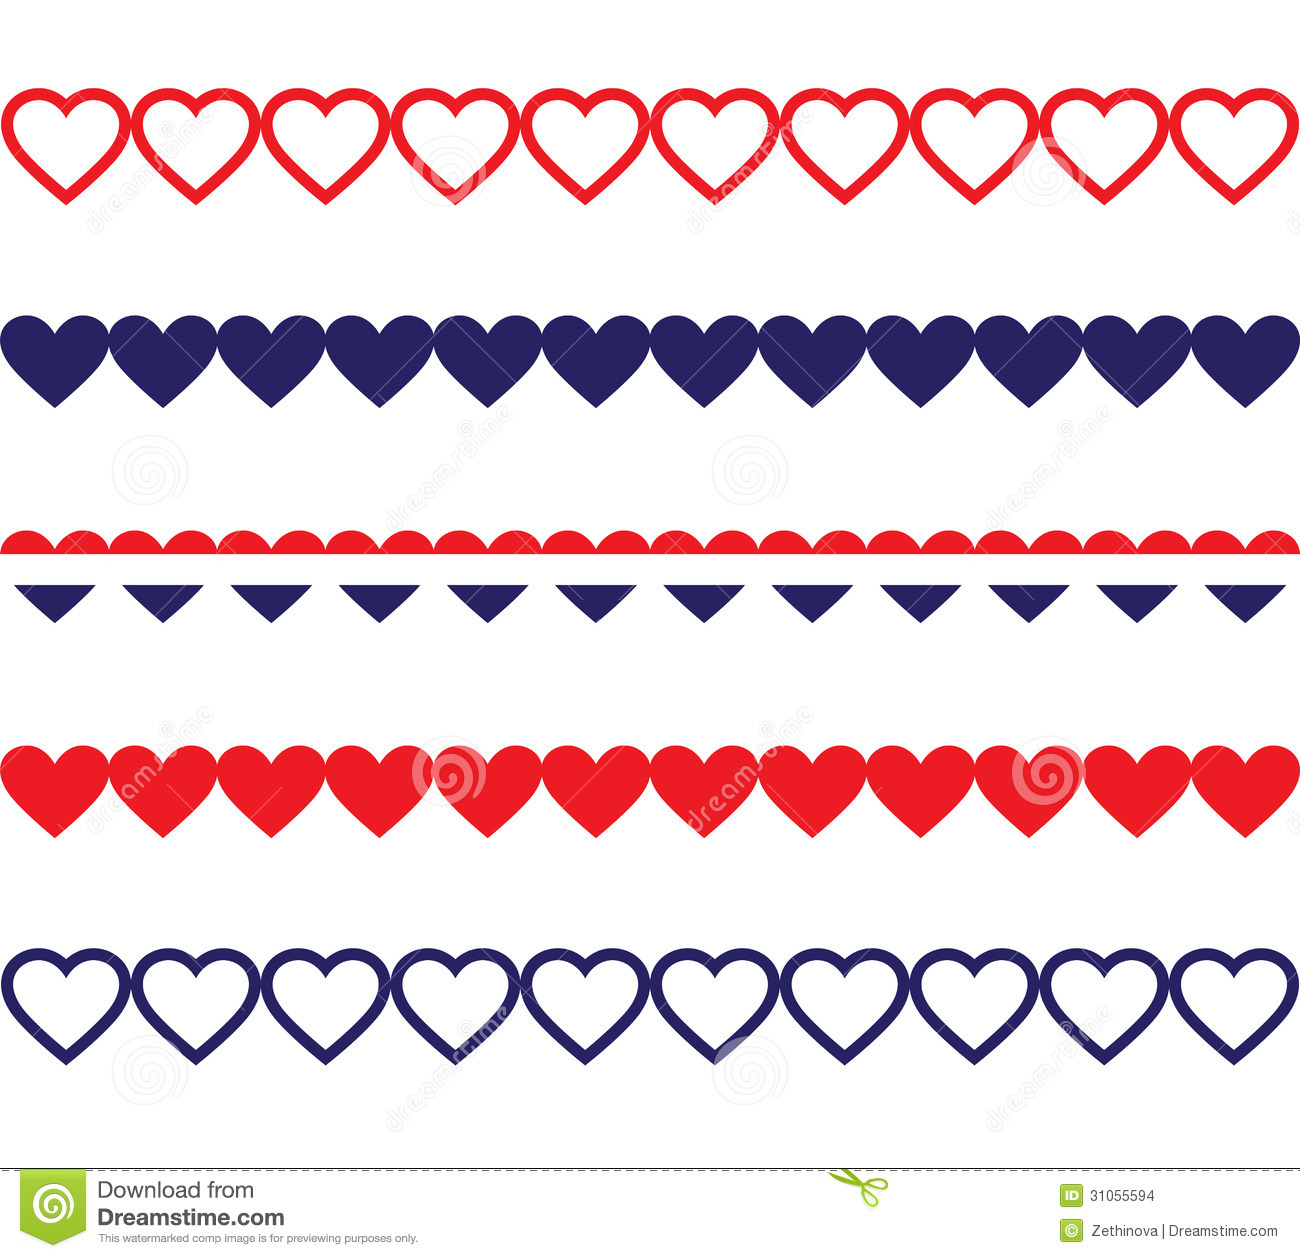 Patriotic Heart Borders Stock Images - Image: 31055594